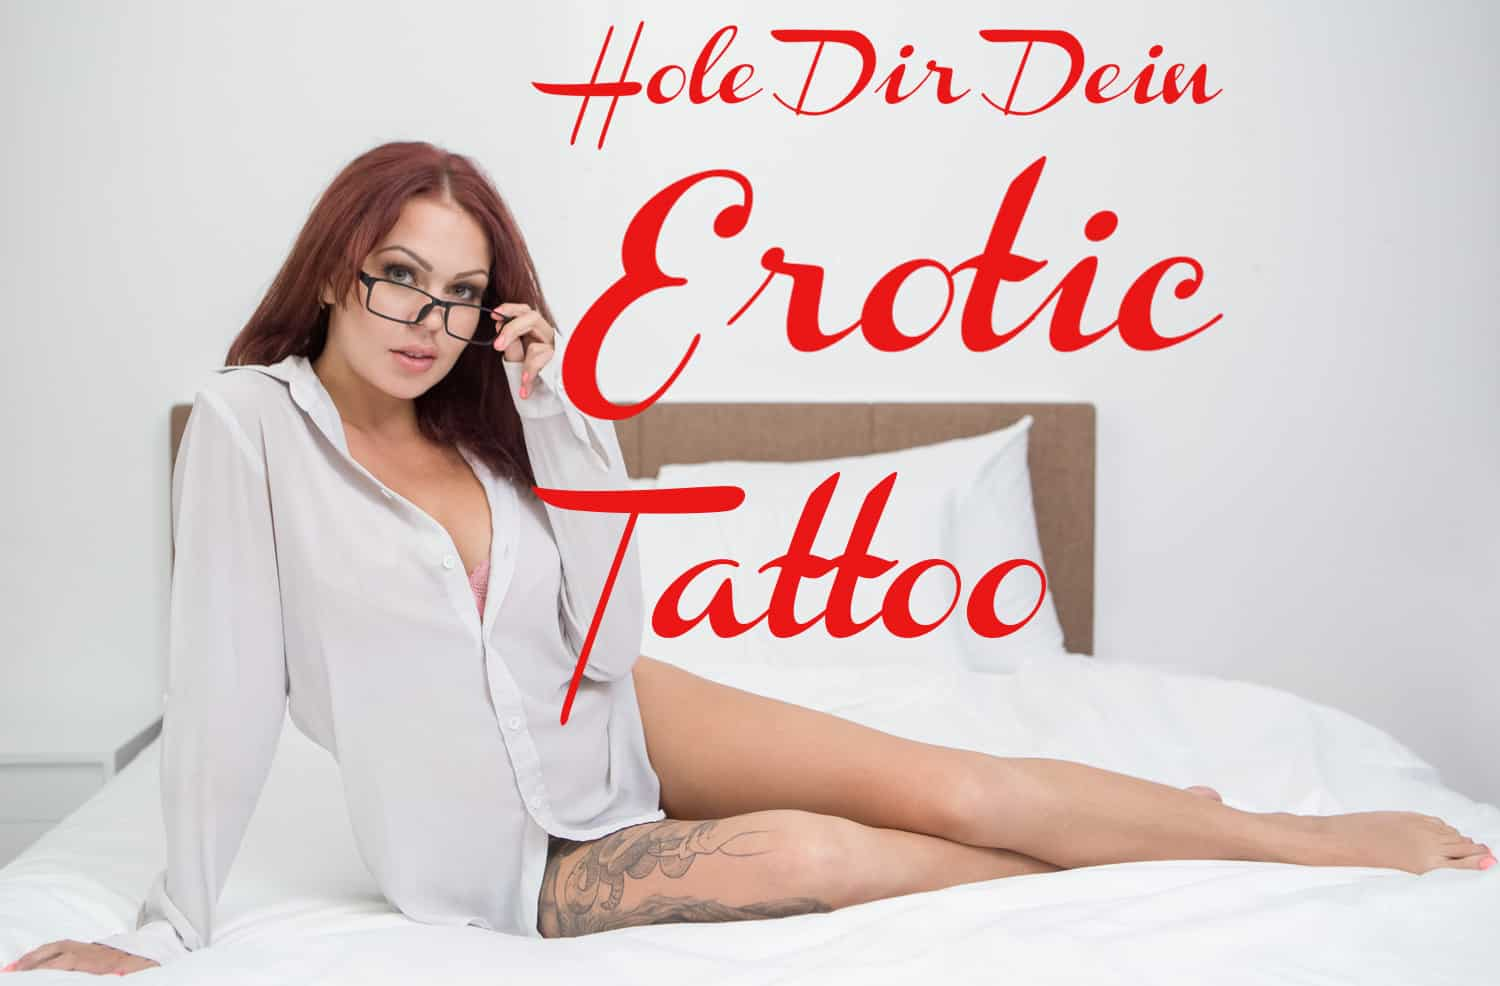 Erotic Sex Tattoo